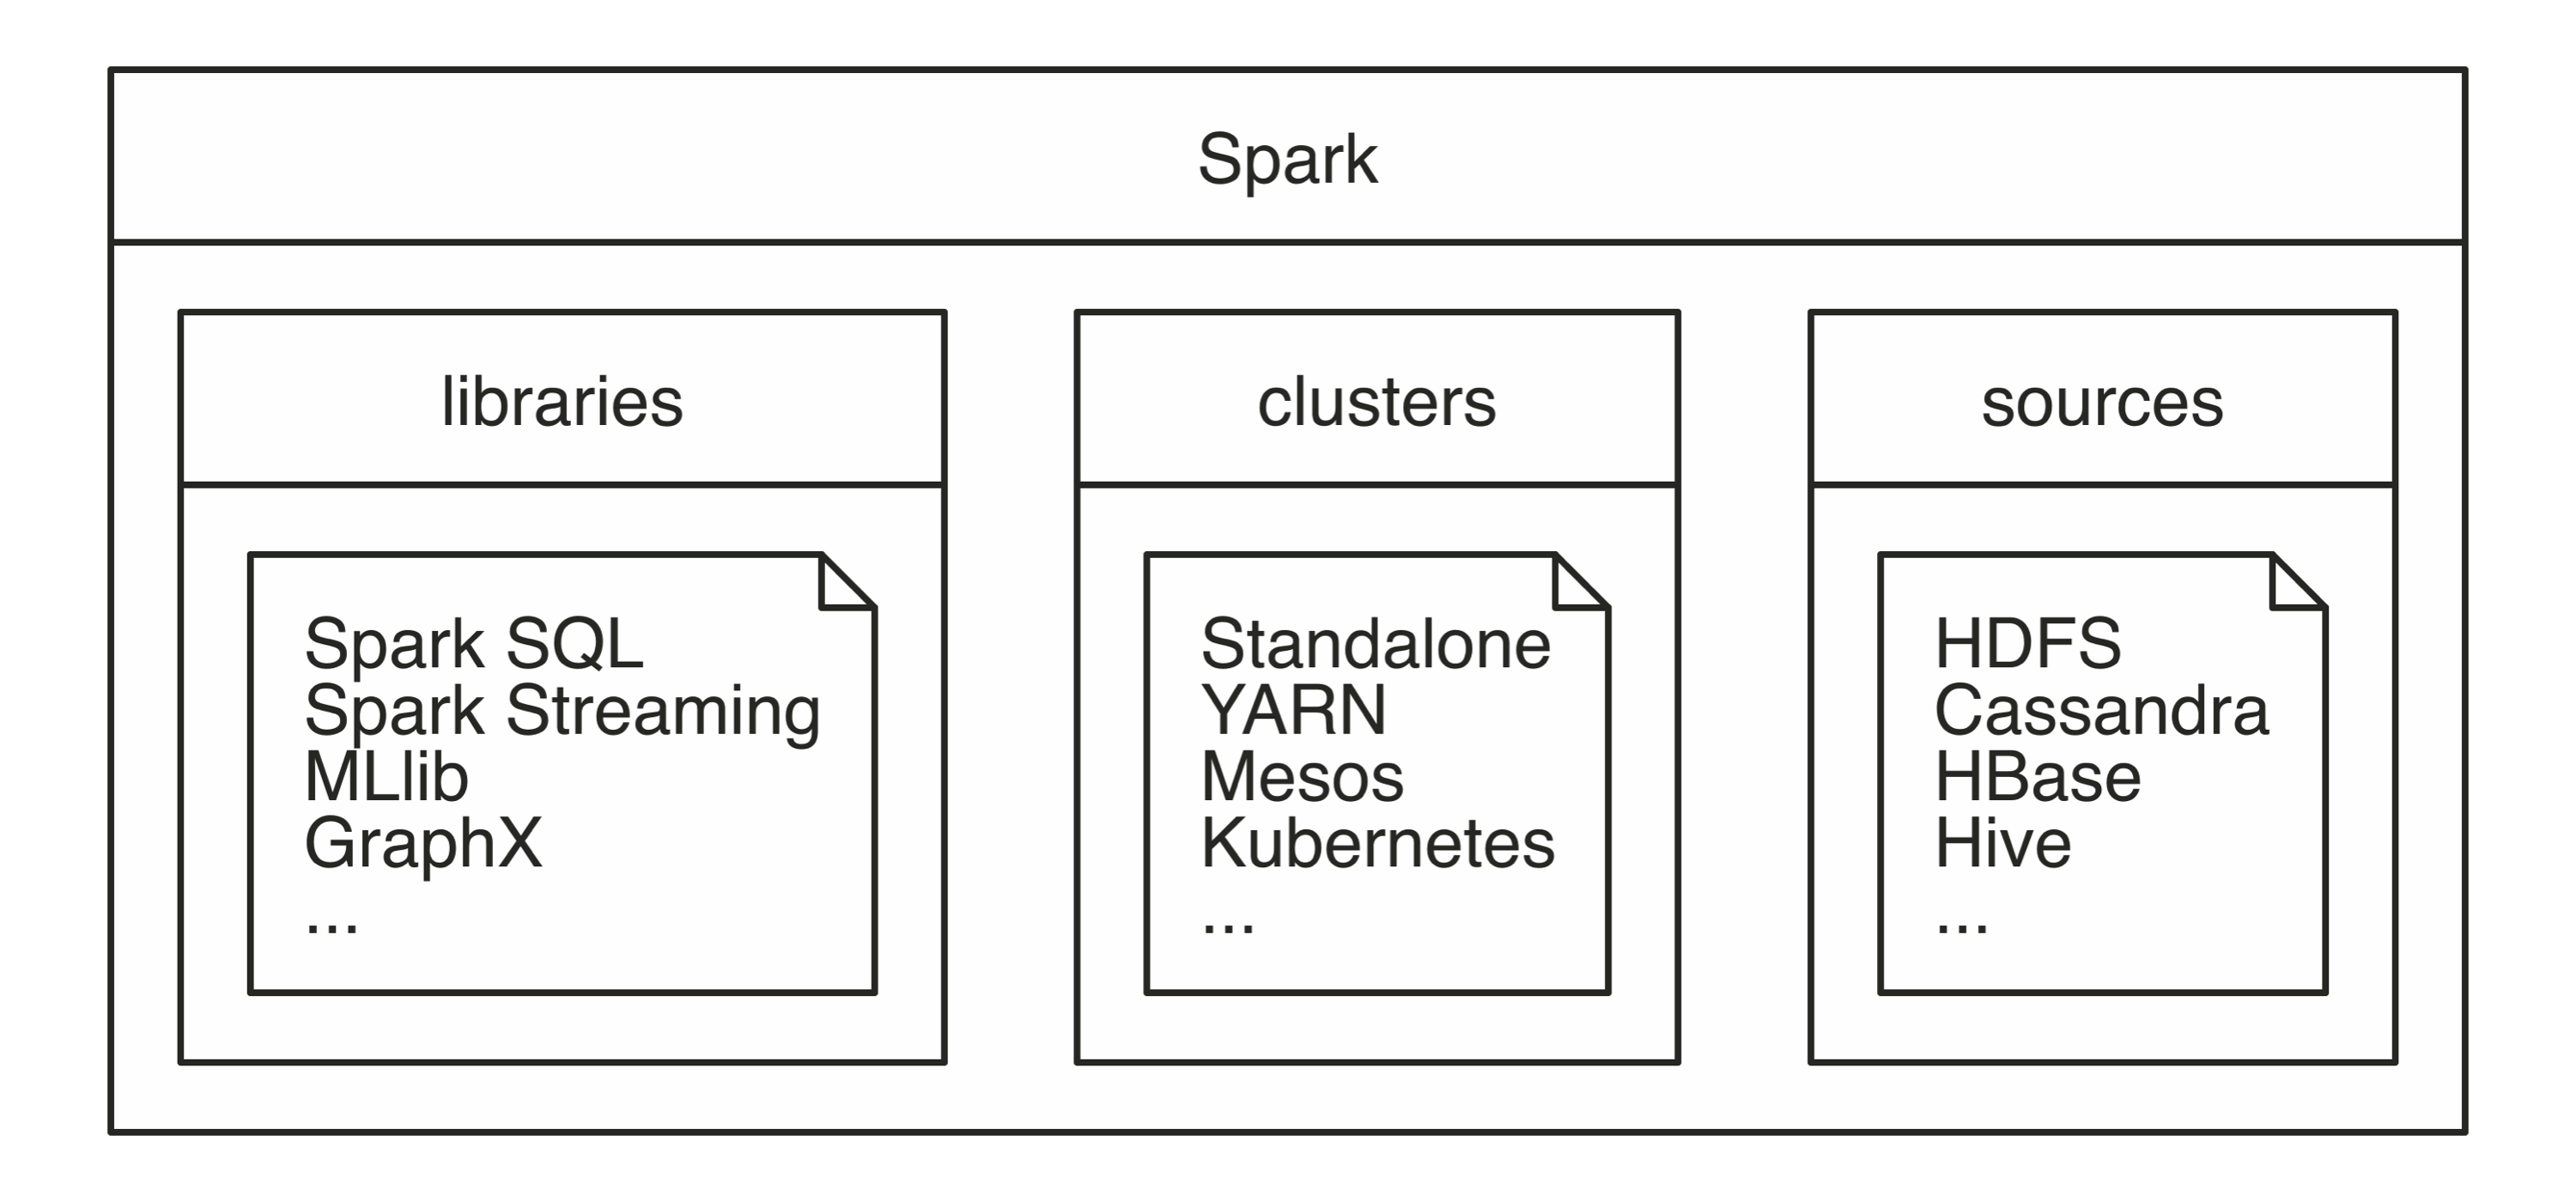 Spark as a unified analytics engine for large-scale data processing||intro-spark-unified